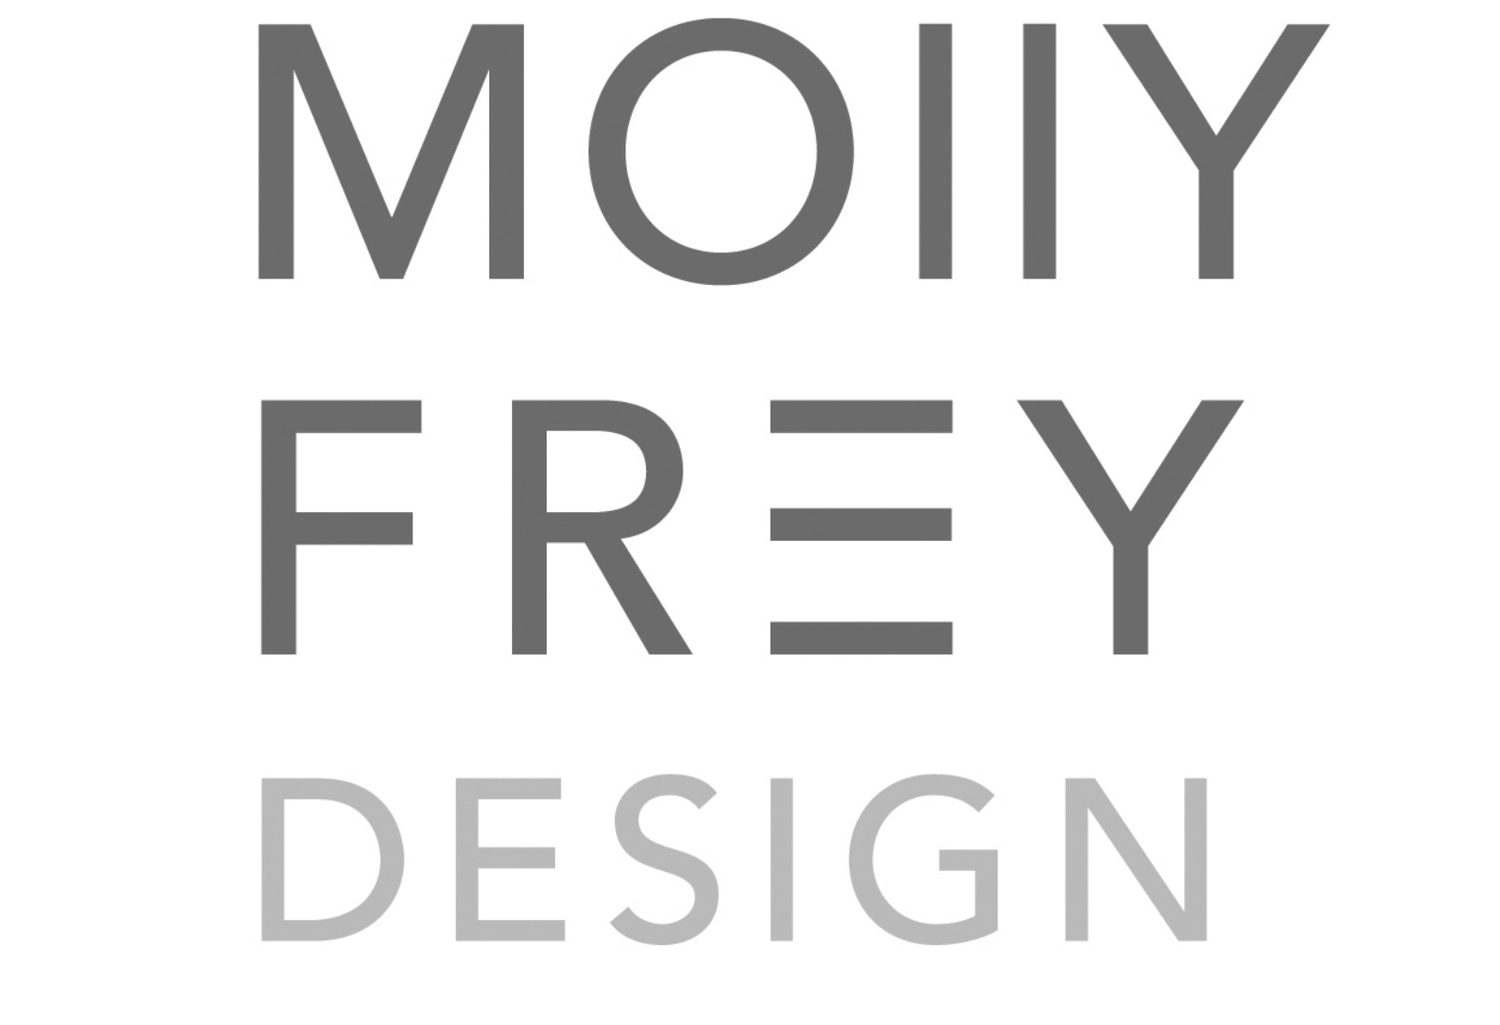 MOLLY FREY DESIGN